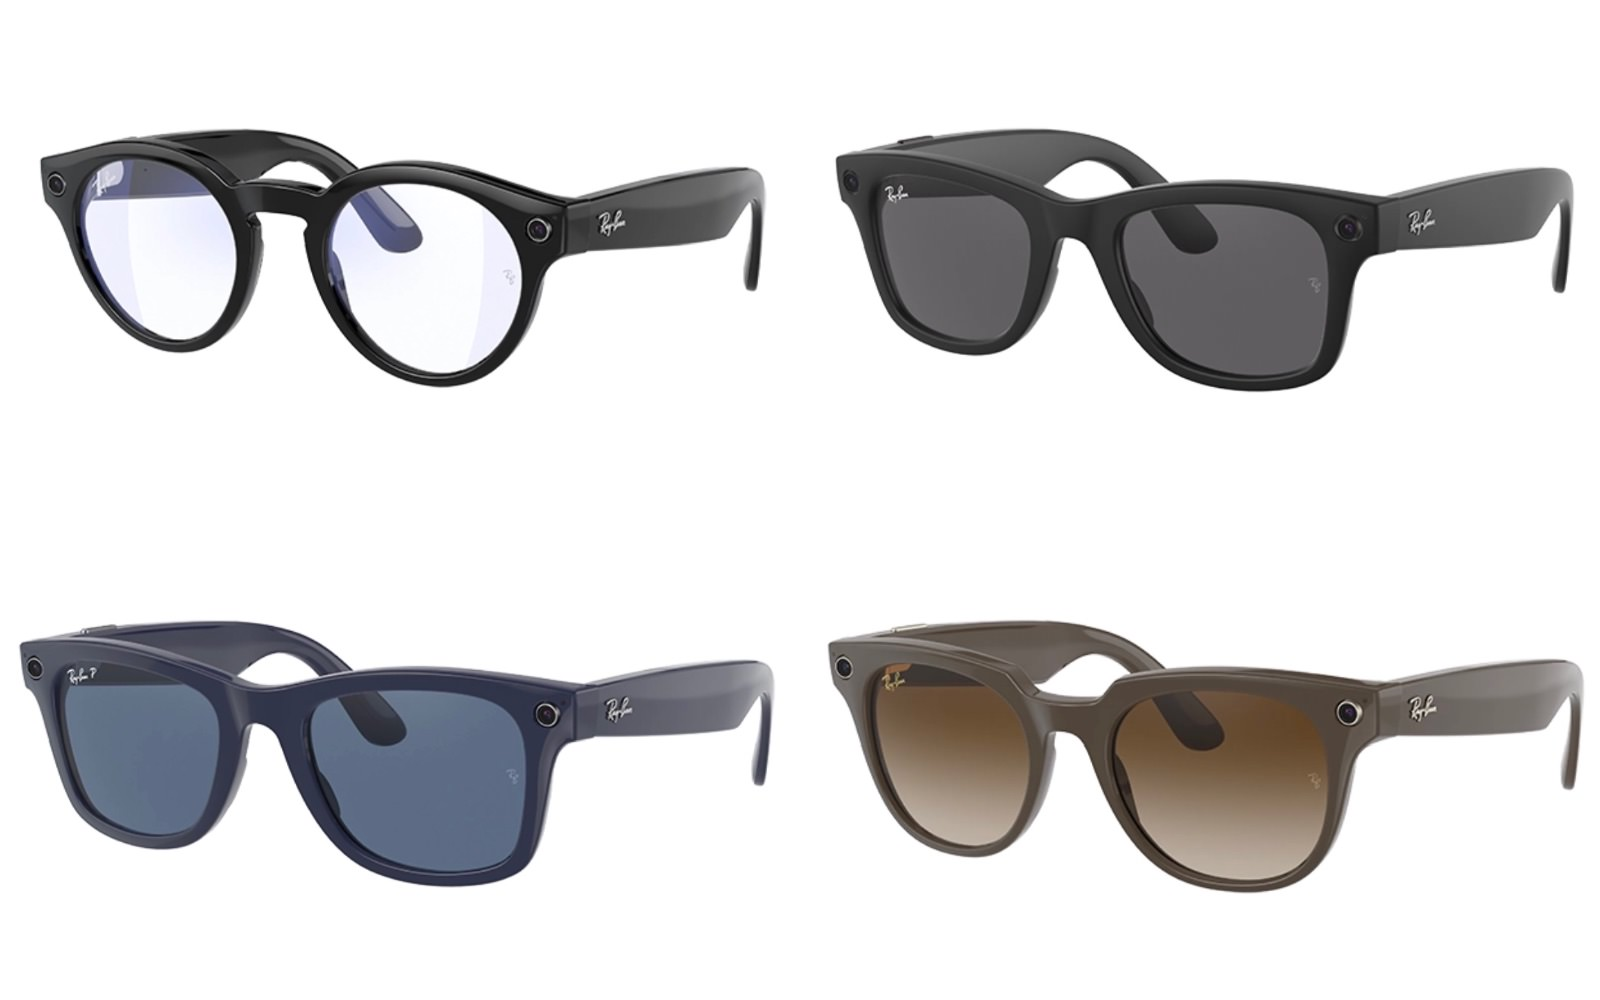 RayBan Stories Facebook Smart Glasses